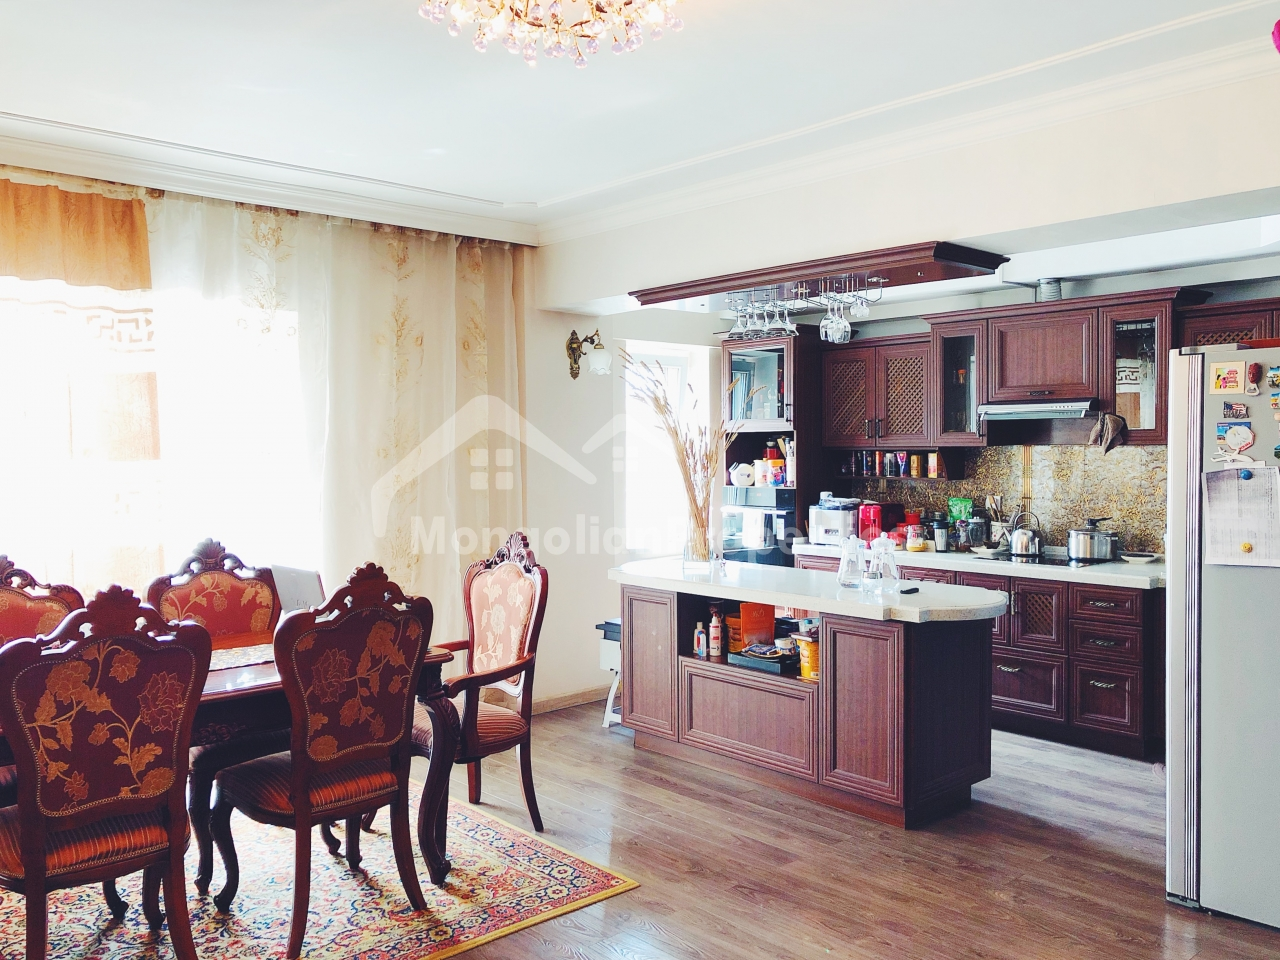 Comfortable 2 bedroom apartment is for rent at One Residence, Near Shangrila